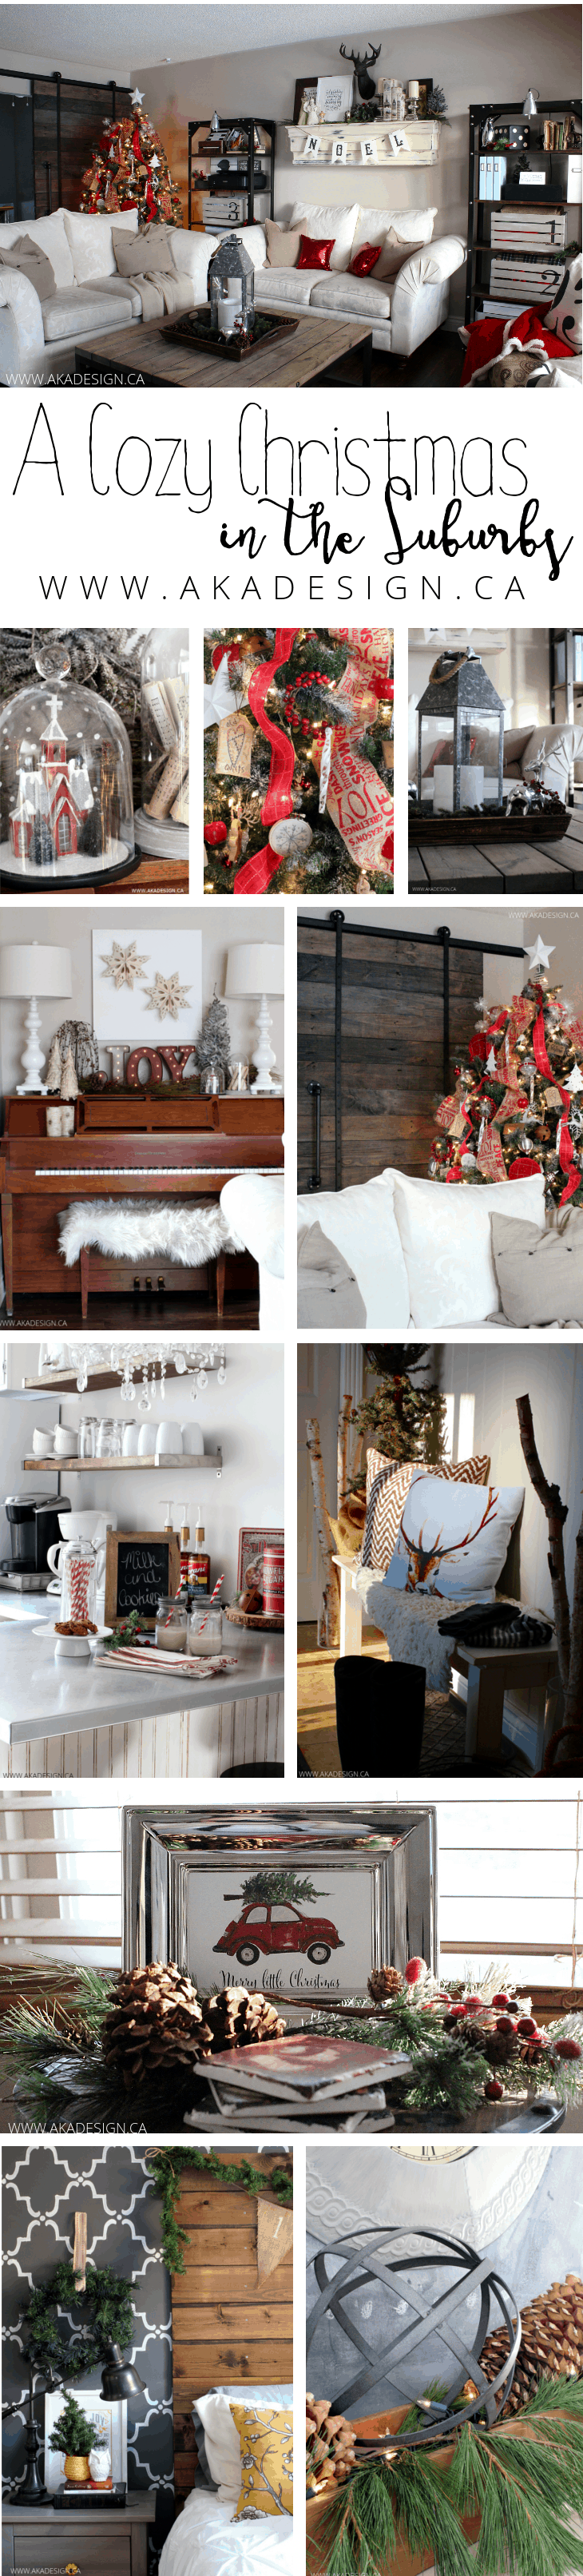 cozy christmas in the suburbs tour